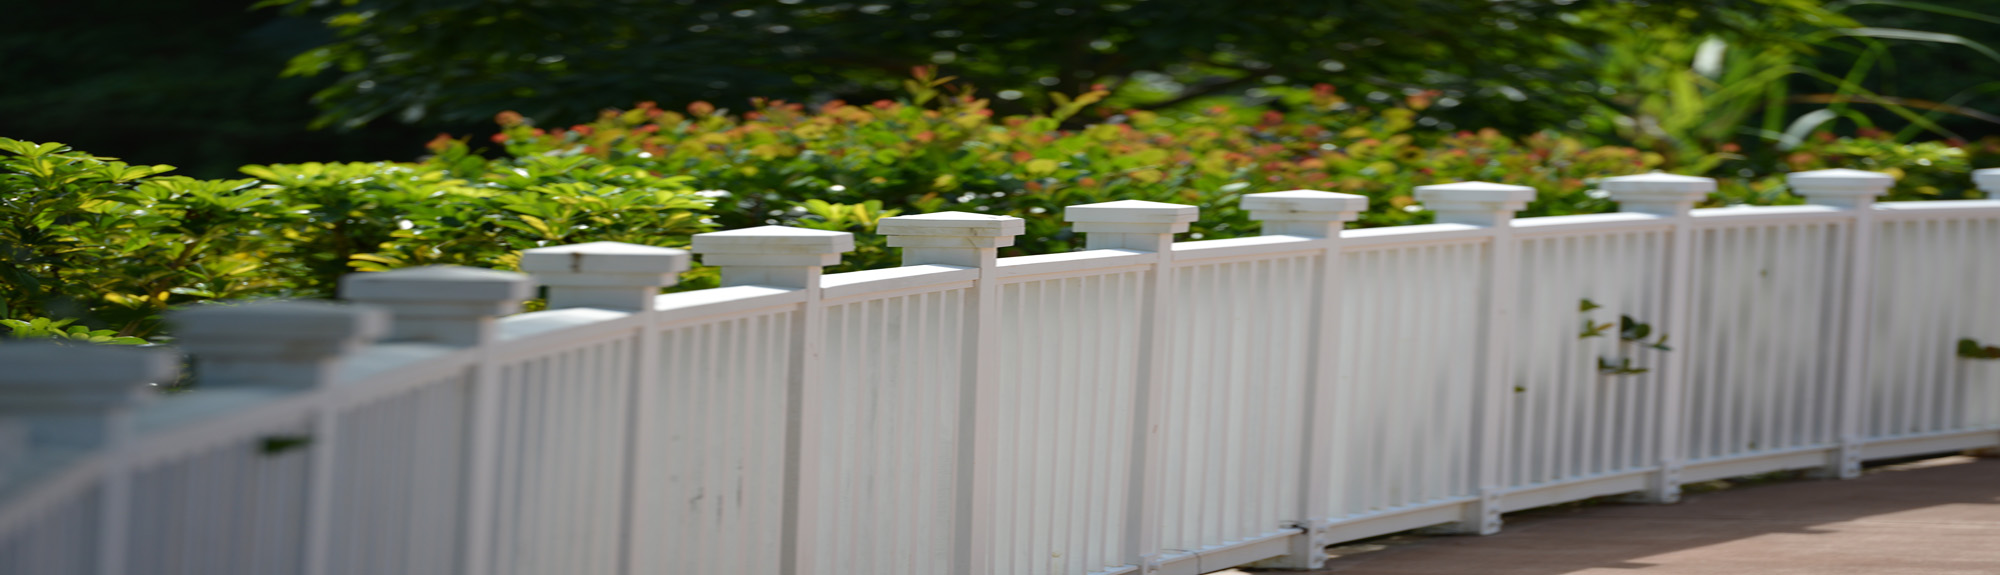 new_bigstock-White-Picket-Fence-56204135-copy